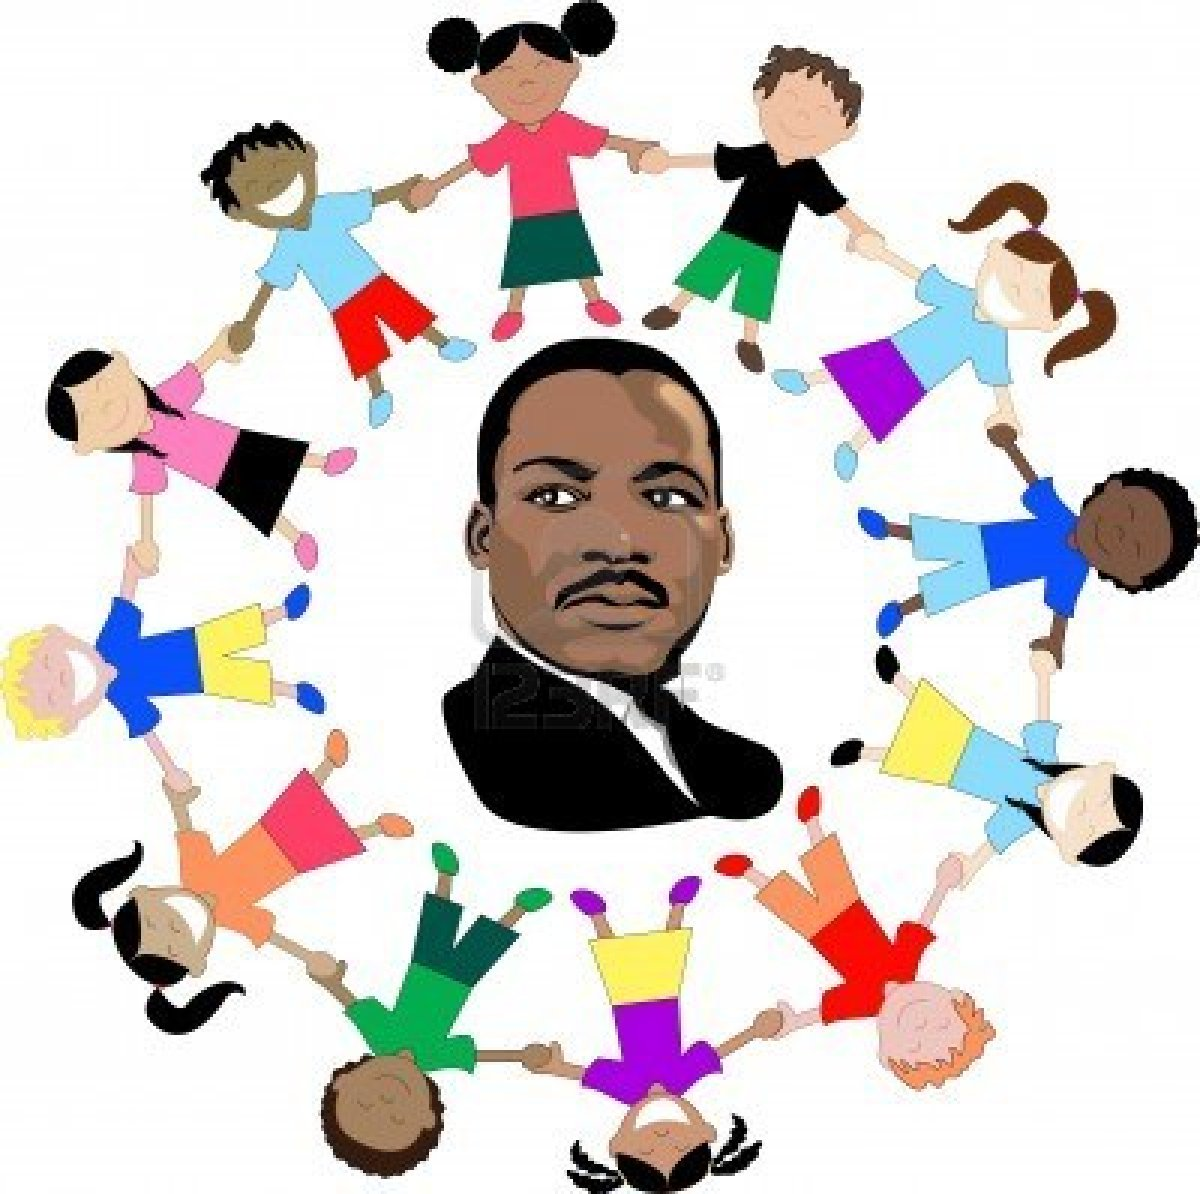 banner black and white Martin luther jr clipart desktop. King day at claverack.